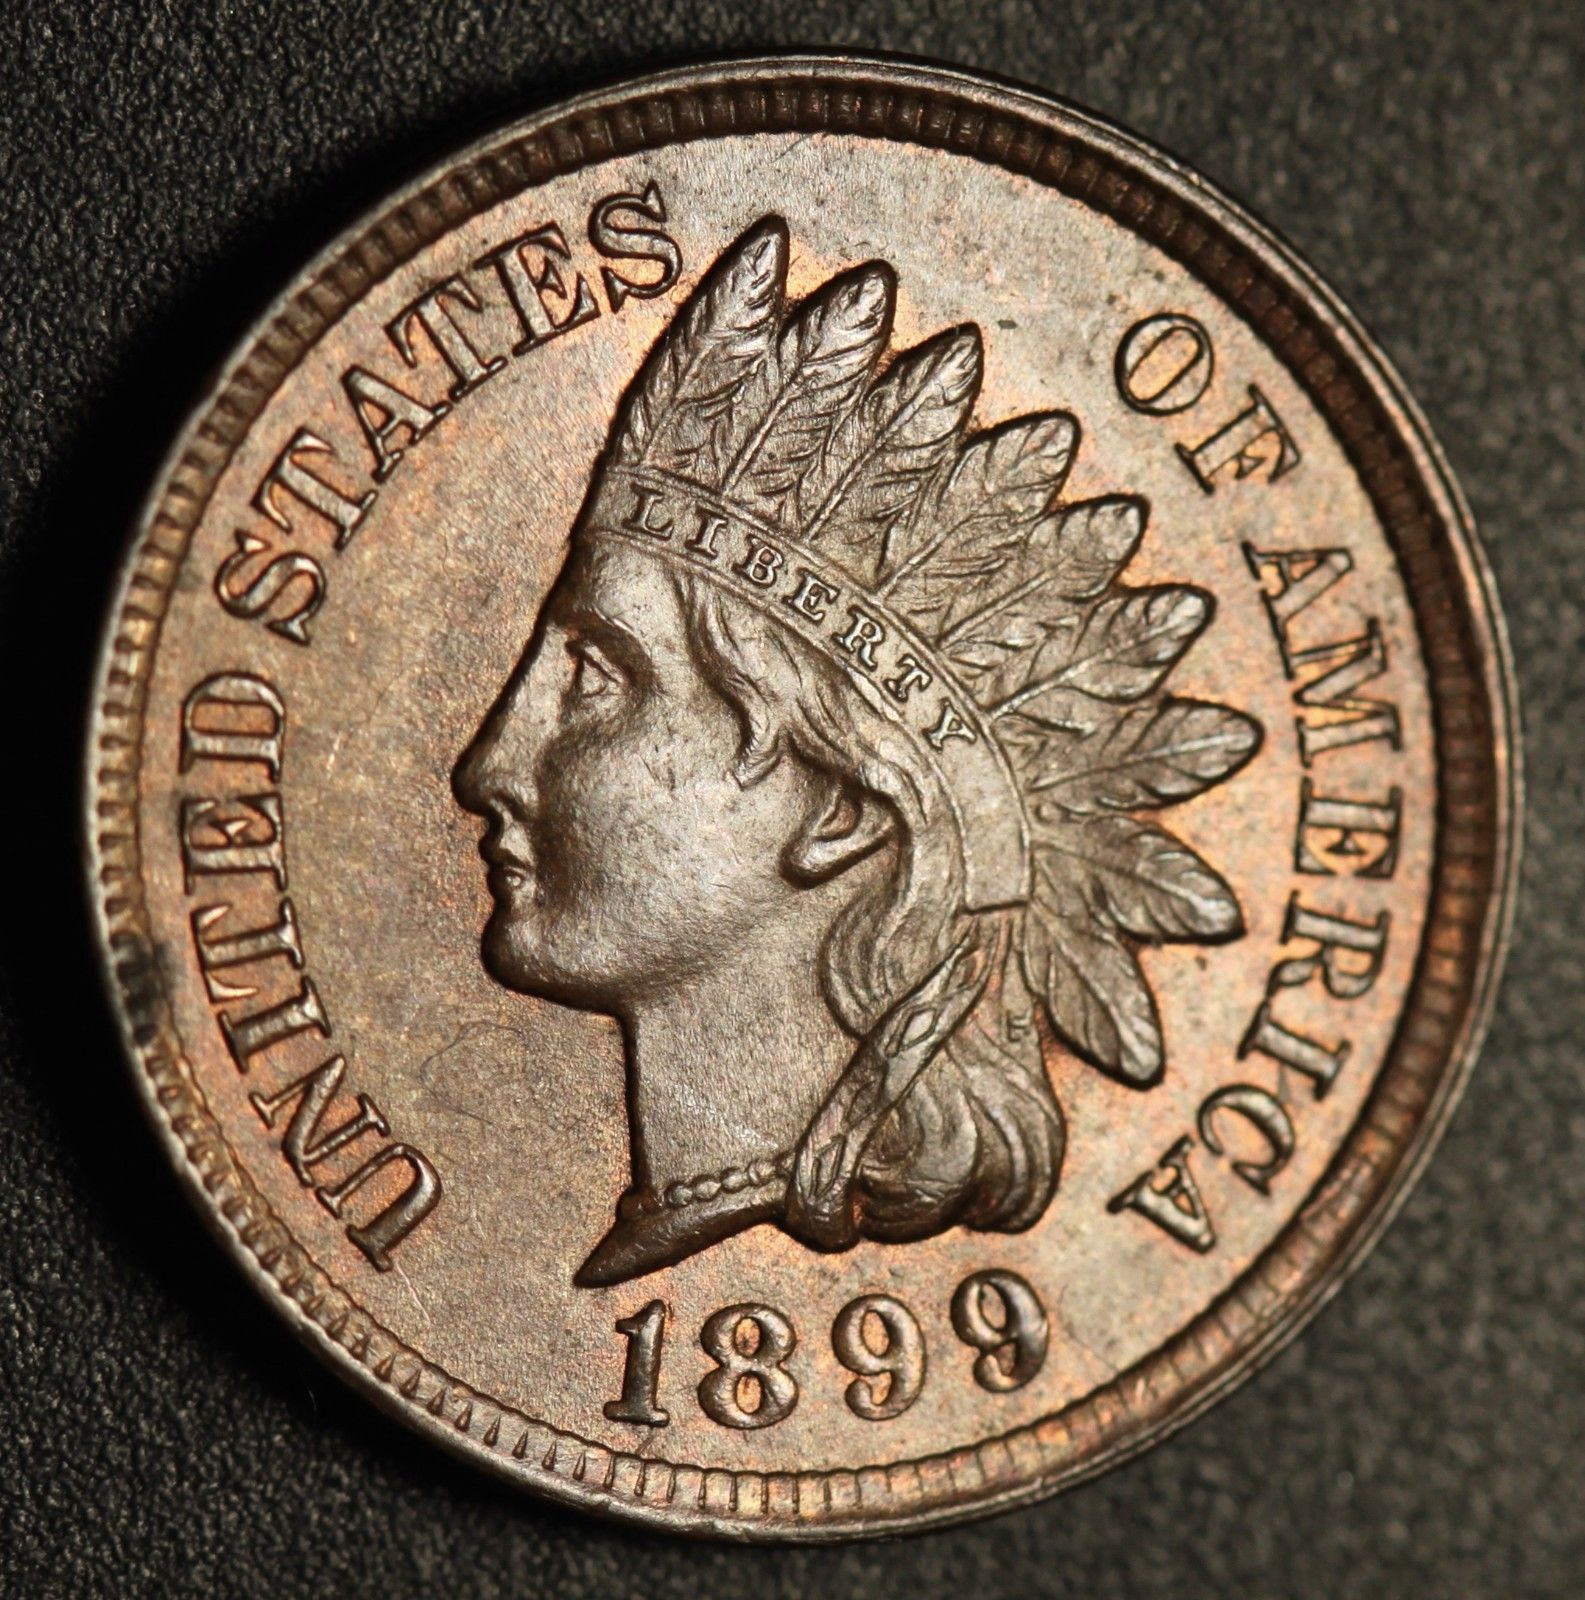 1899 RPD-025 - Indian Head Penny - Photo by Ed Nathanson